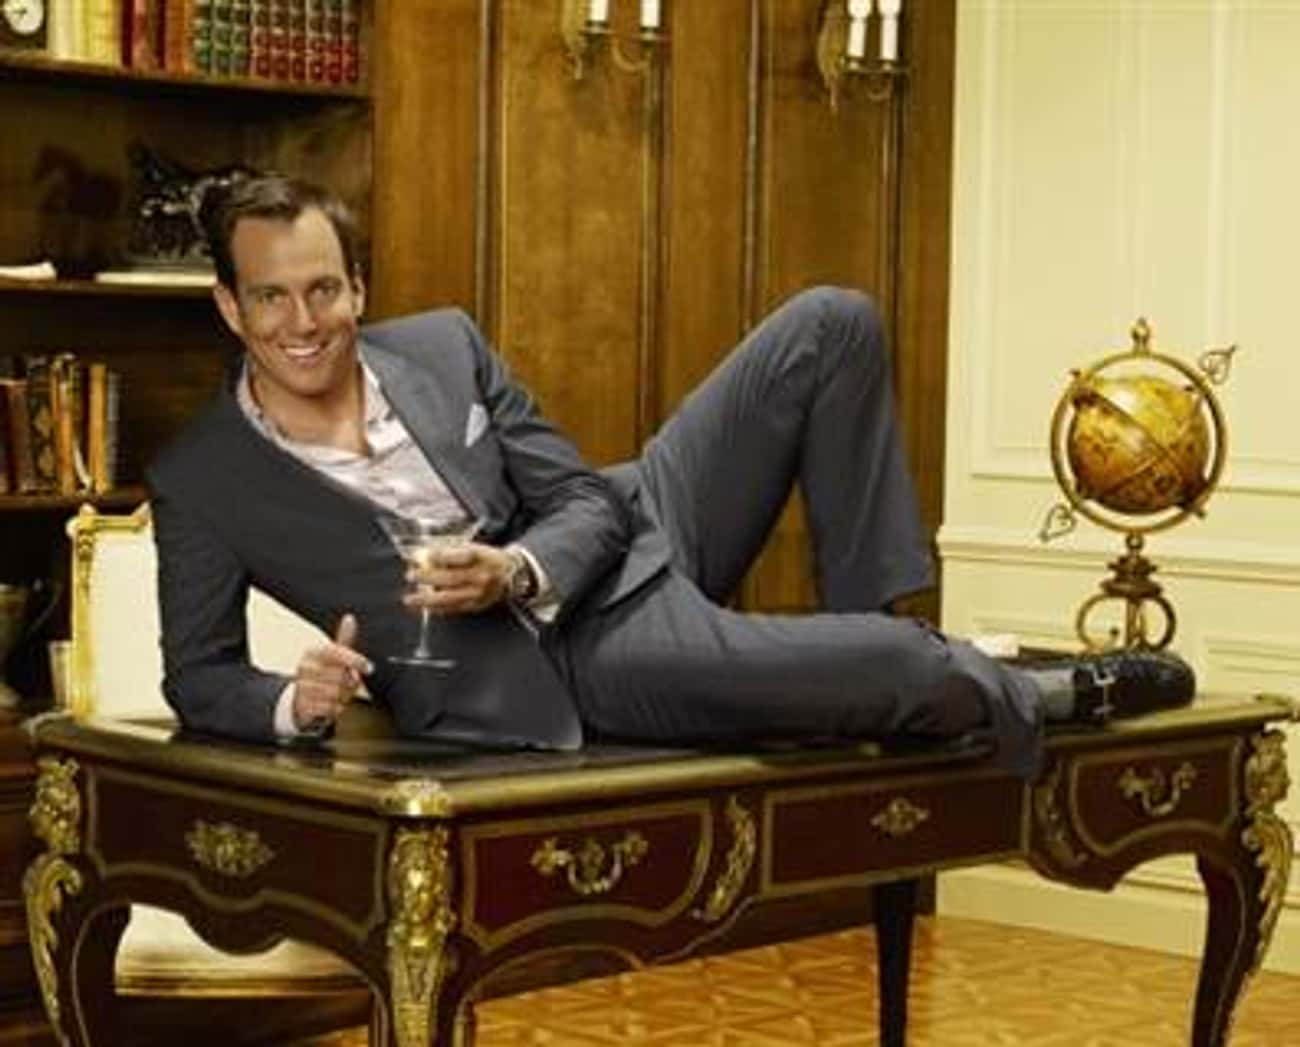 Will Arnett in Blend 1 Button  is listed (or ranked) 2 on the list Hot Will Arnett Photos